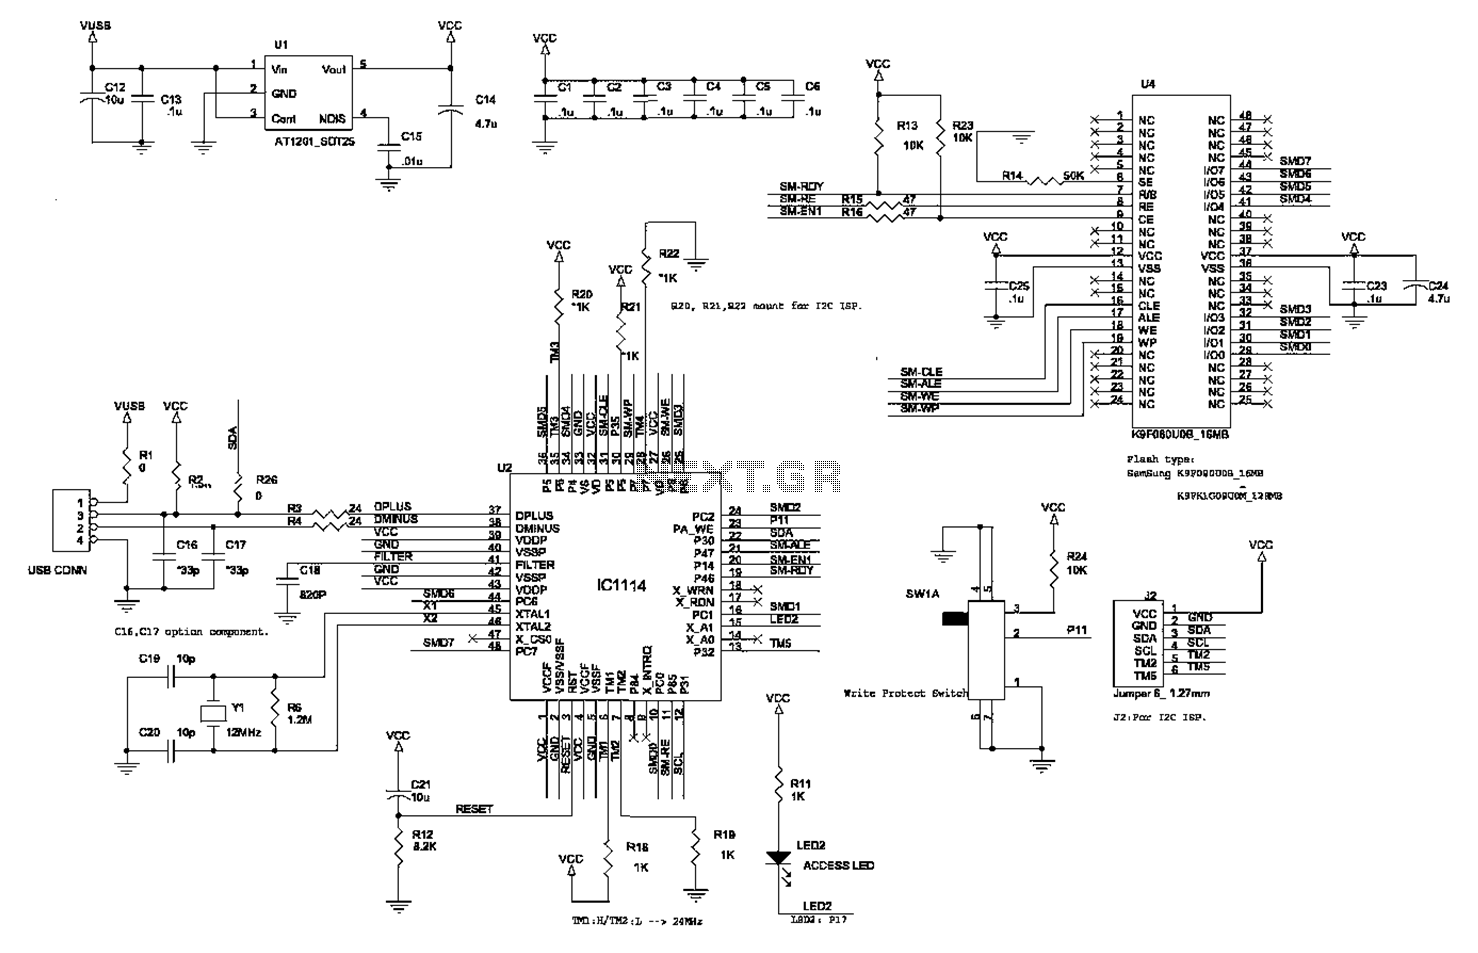 Making a circuit diagram of the crystal 80mW FM Transmitter - schematic